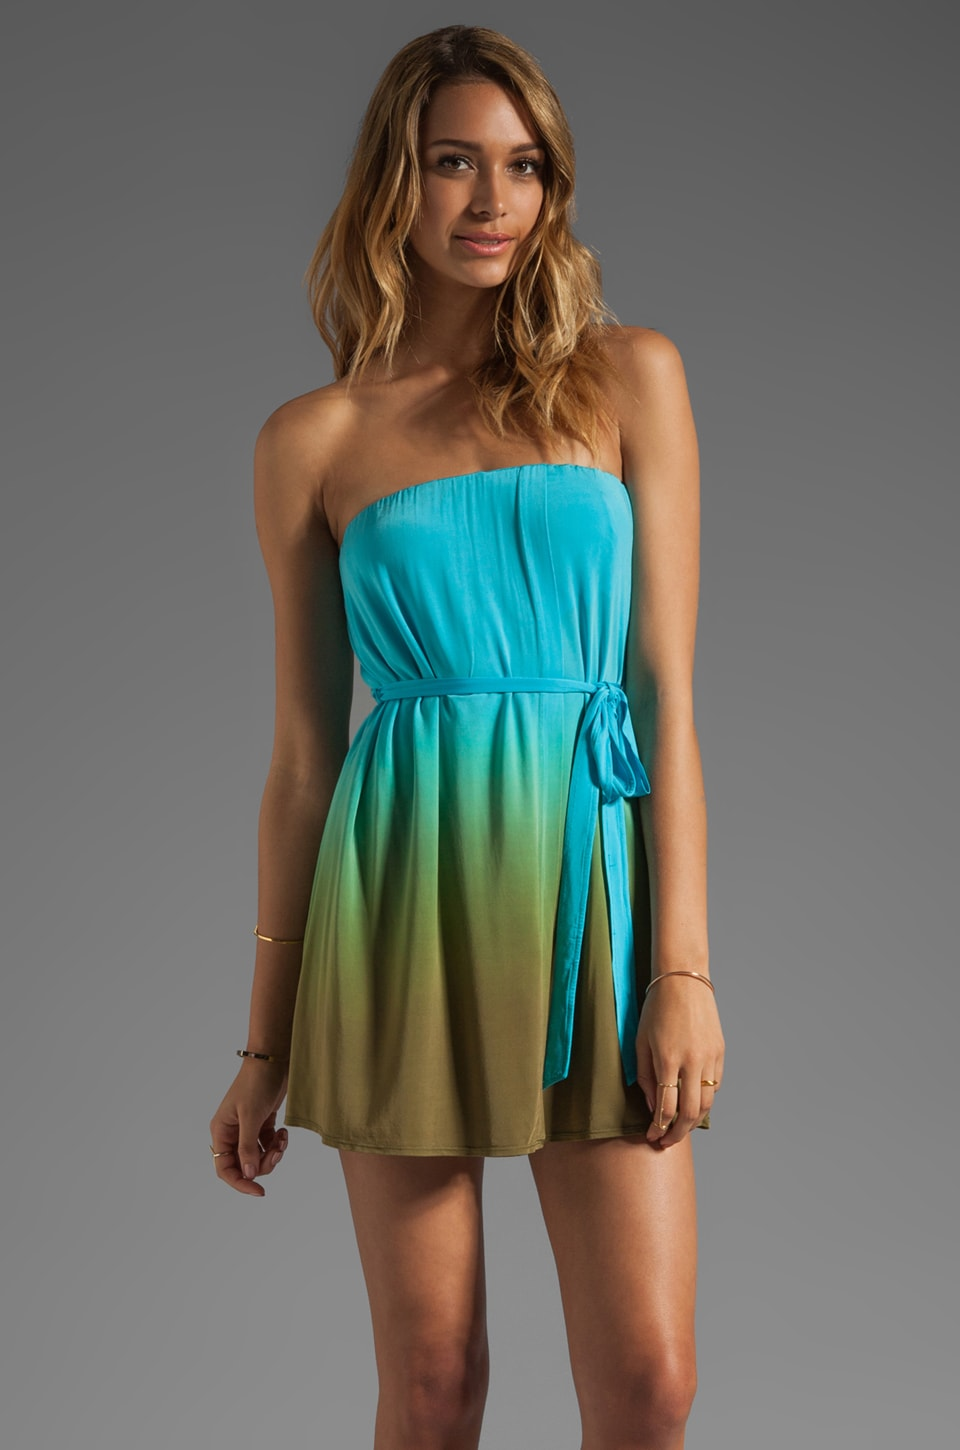 Plenty by Tracy Reese Dip Dyed Slinky Jersey Drapey Strapless Dress in Pool Blue/Tumbleweed